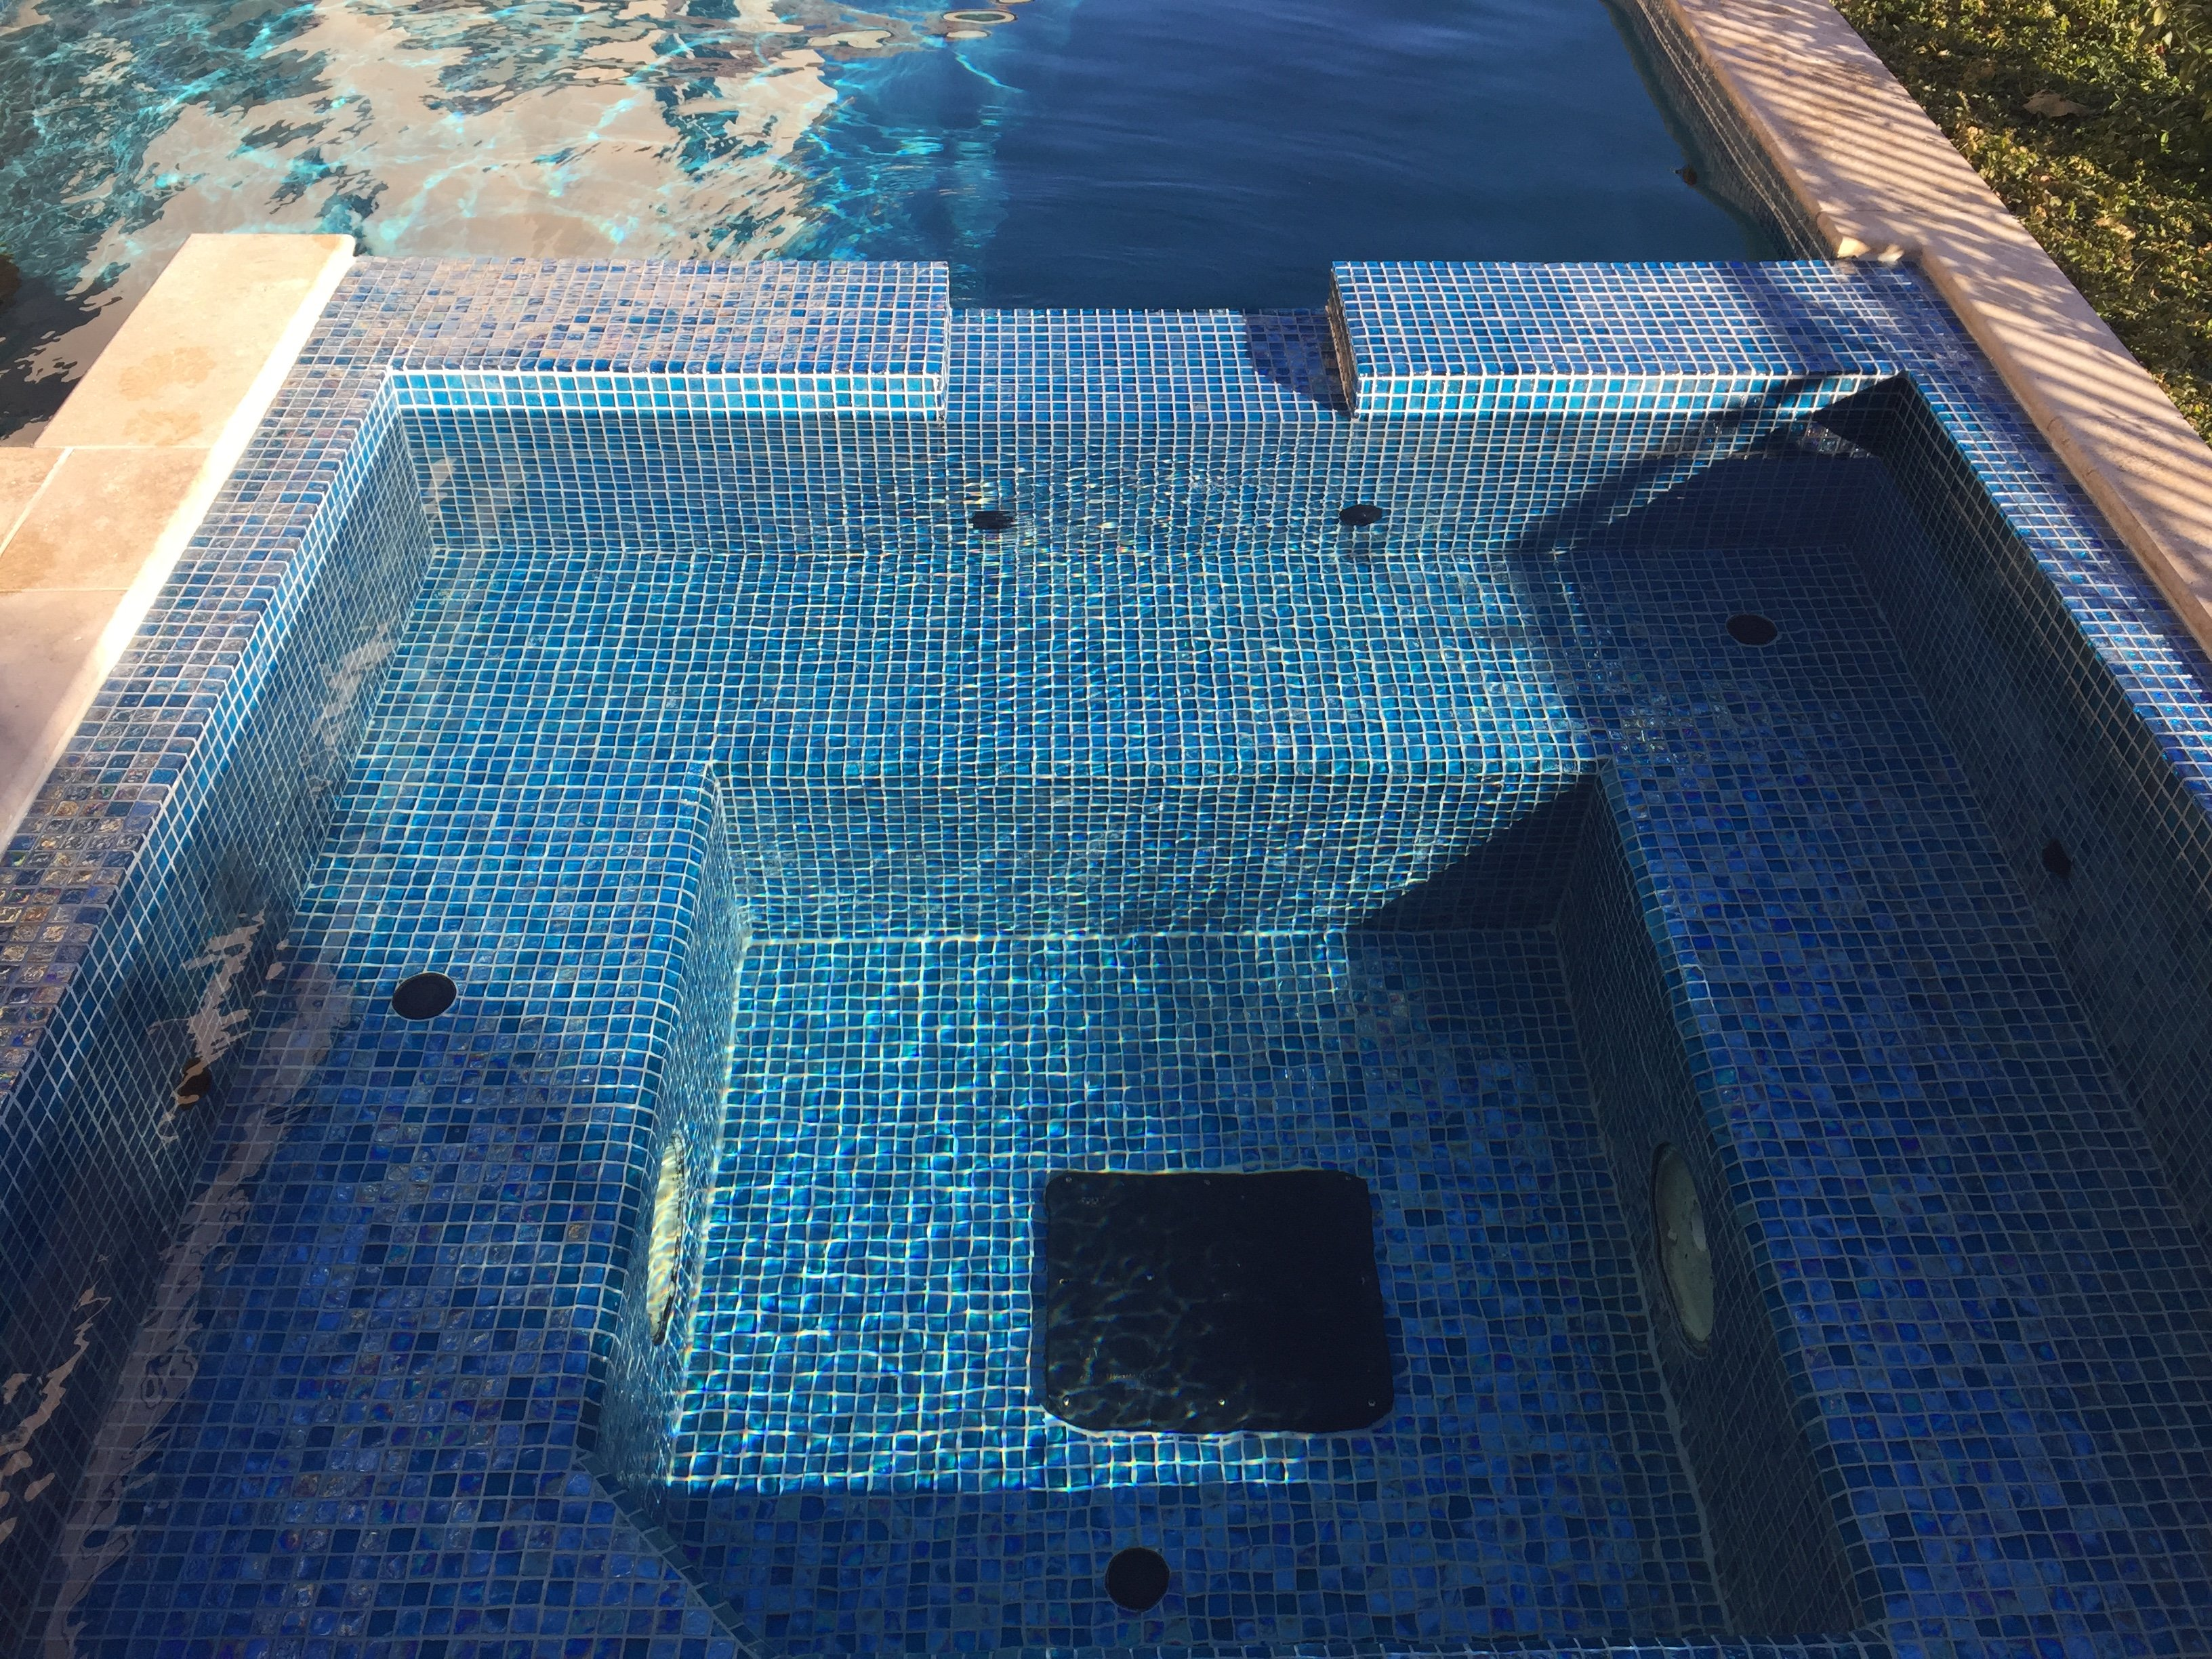 Out-Back Pool & Spa | Pool Installation in Lubbock, TX - Out-Back Pool & Spa